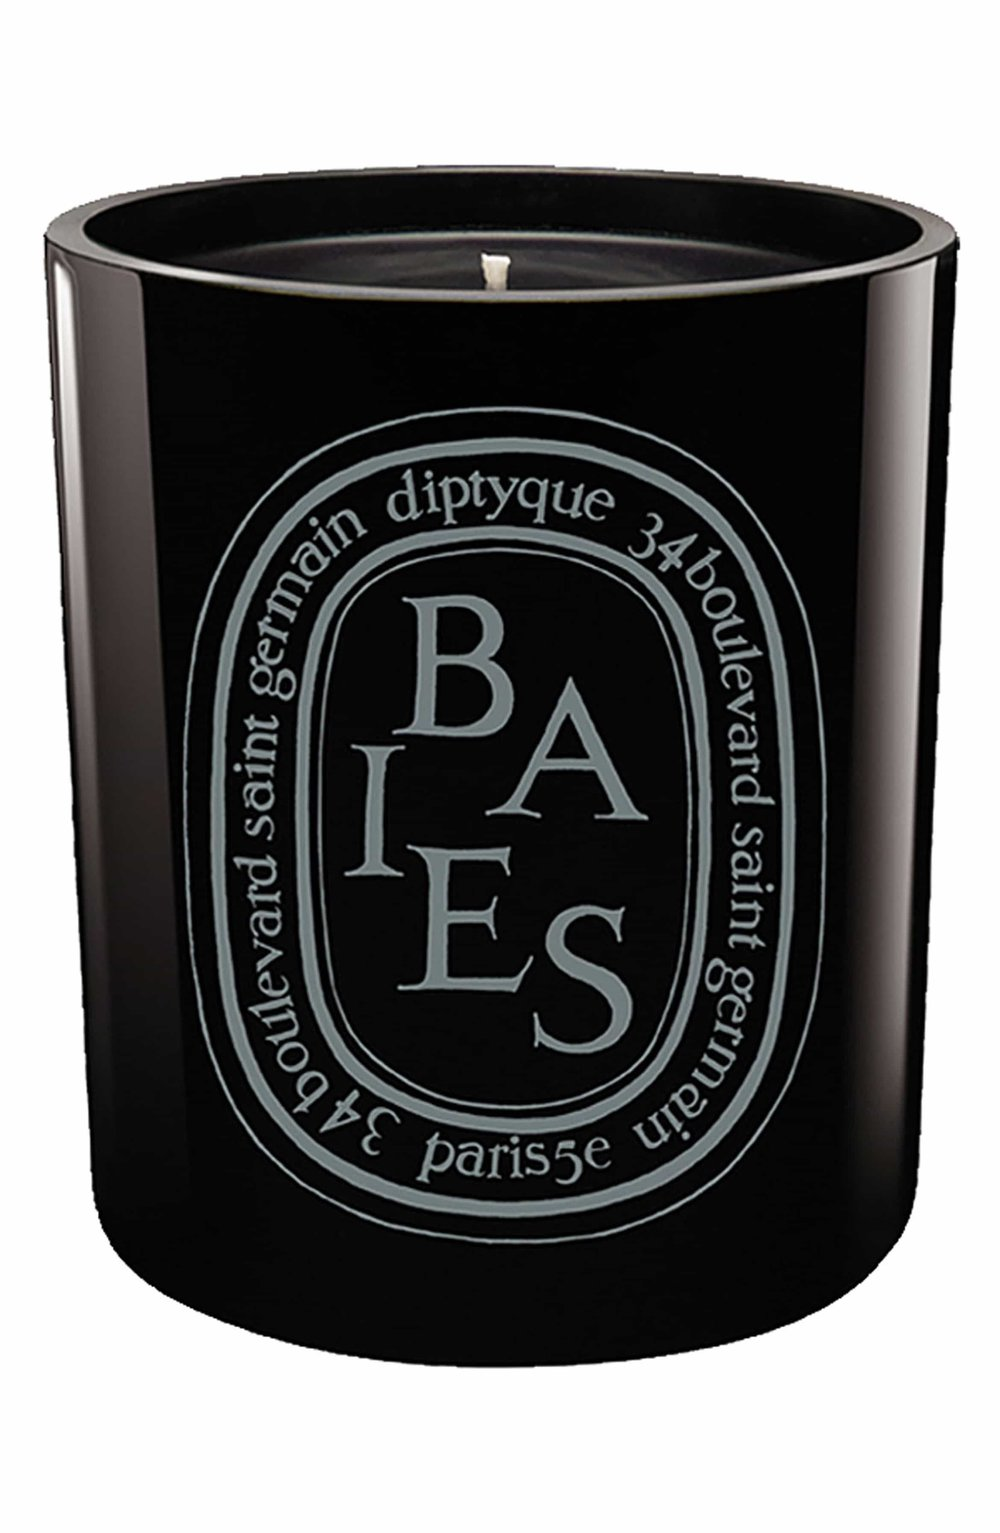 Diptyque Candle.jpeg